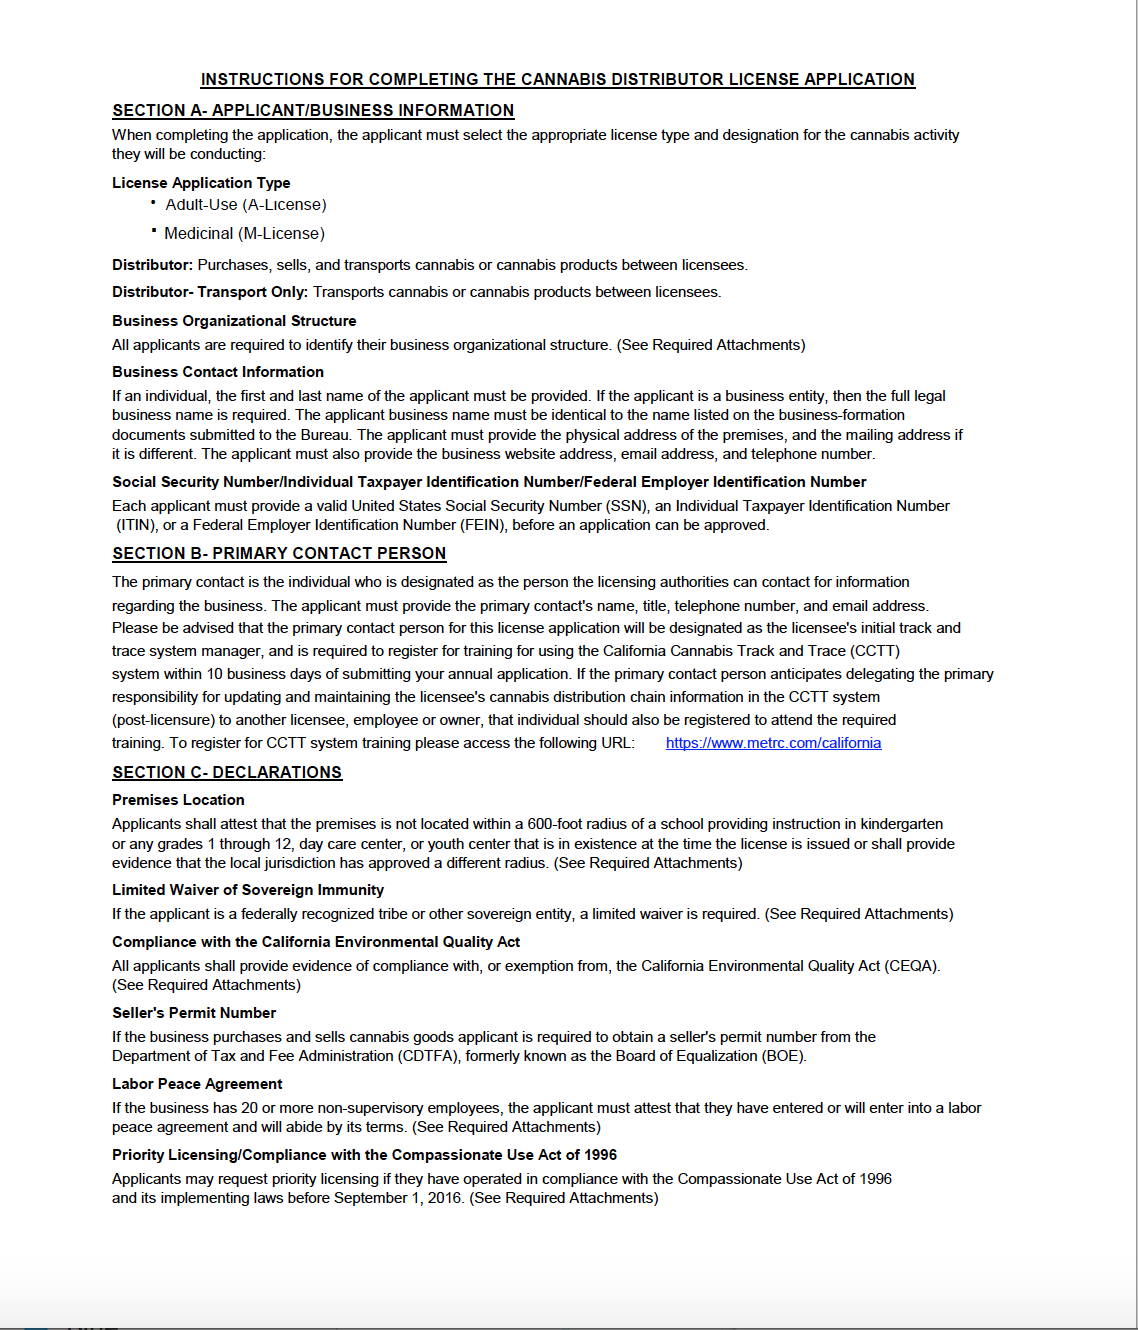 Cannabis Distributor License Application - Instructions.png